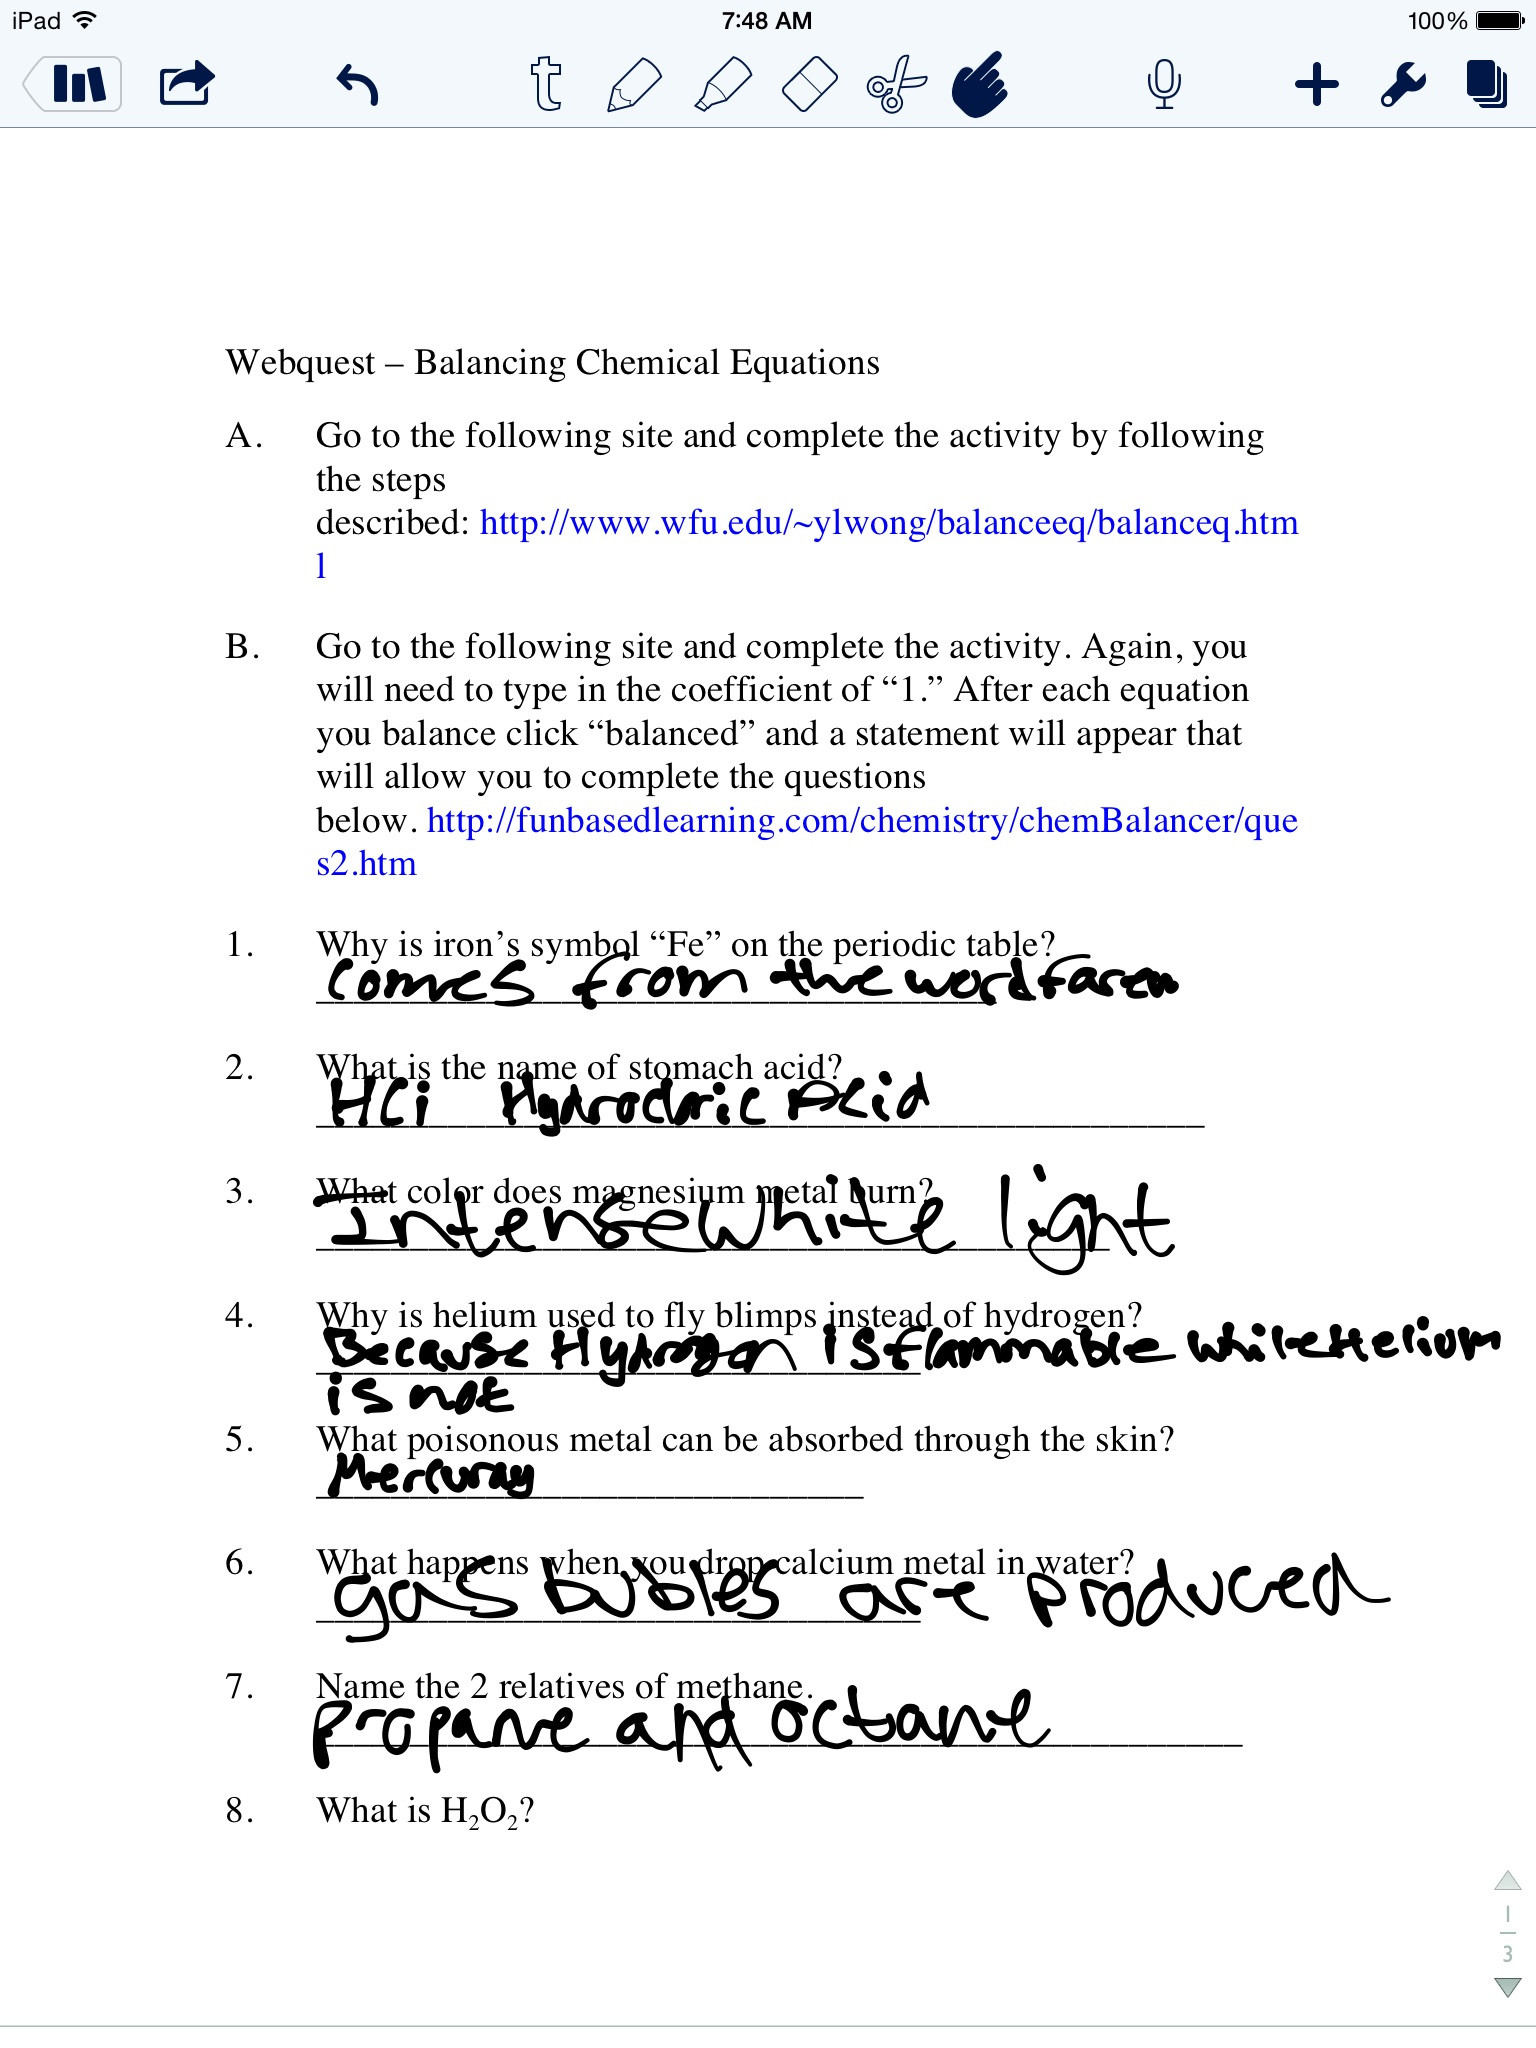 Periodic Table Webquest Worksheet Answers Web Quest Balancing Chemical Equations Mrs Slavens Chemistry